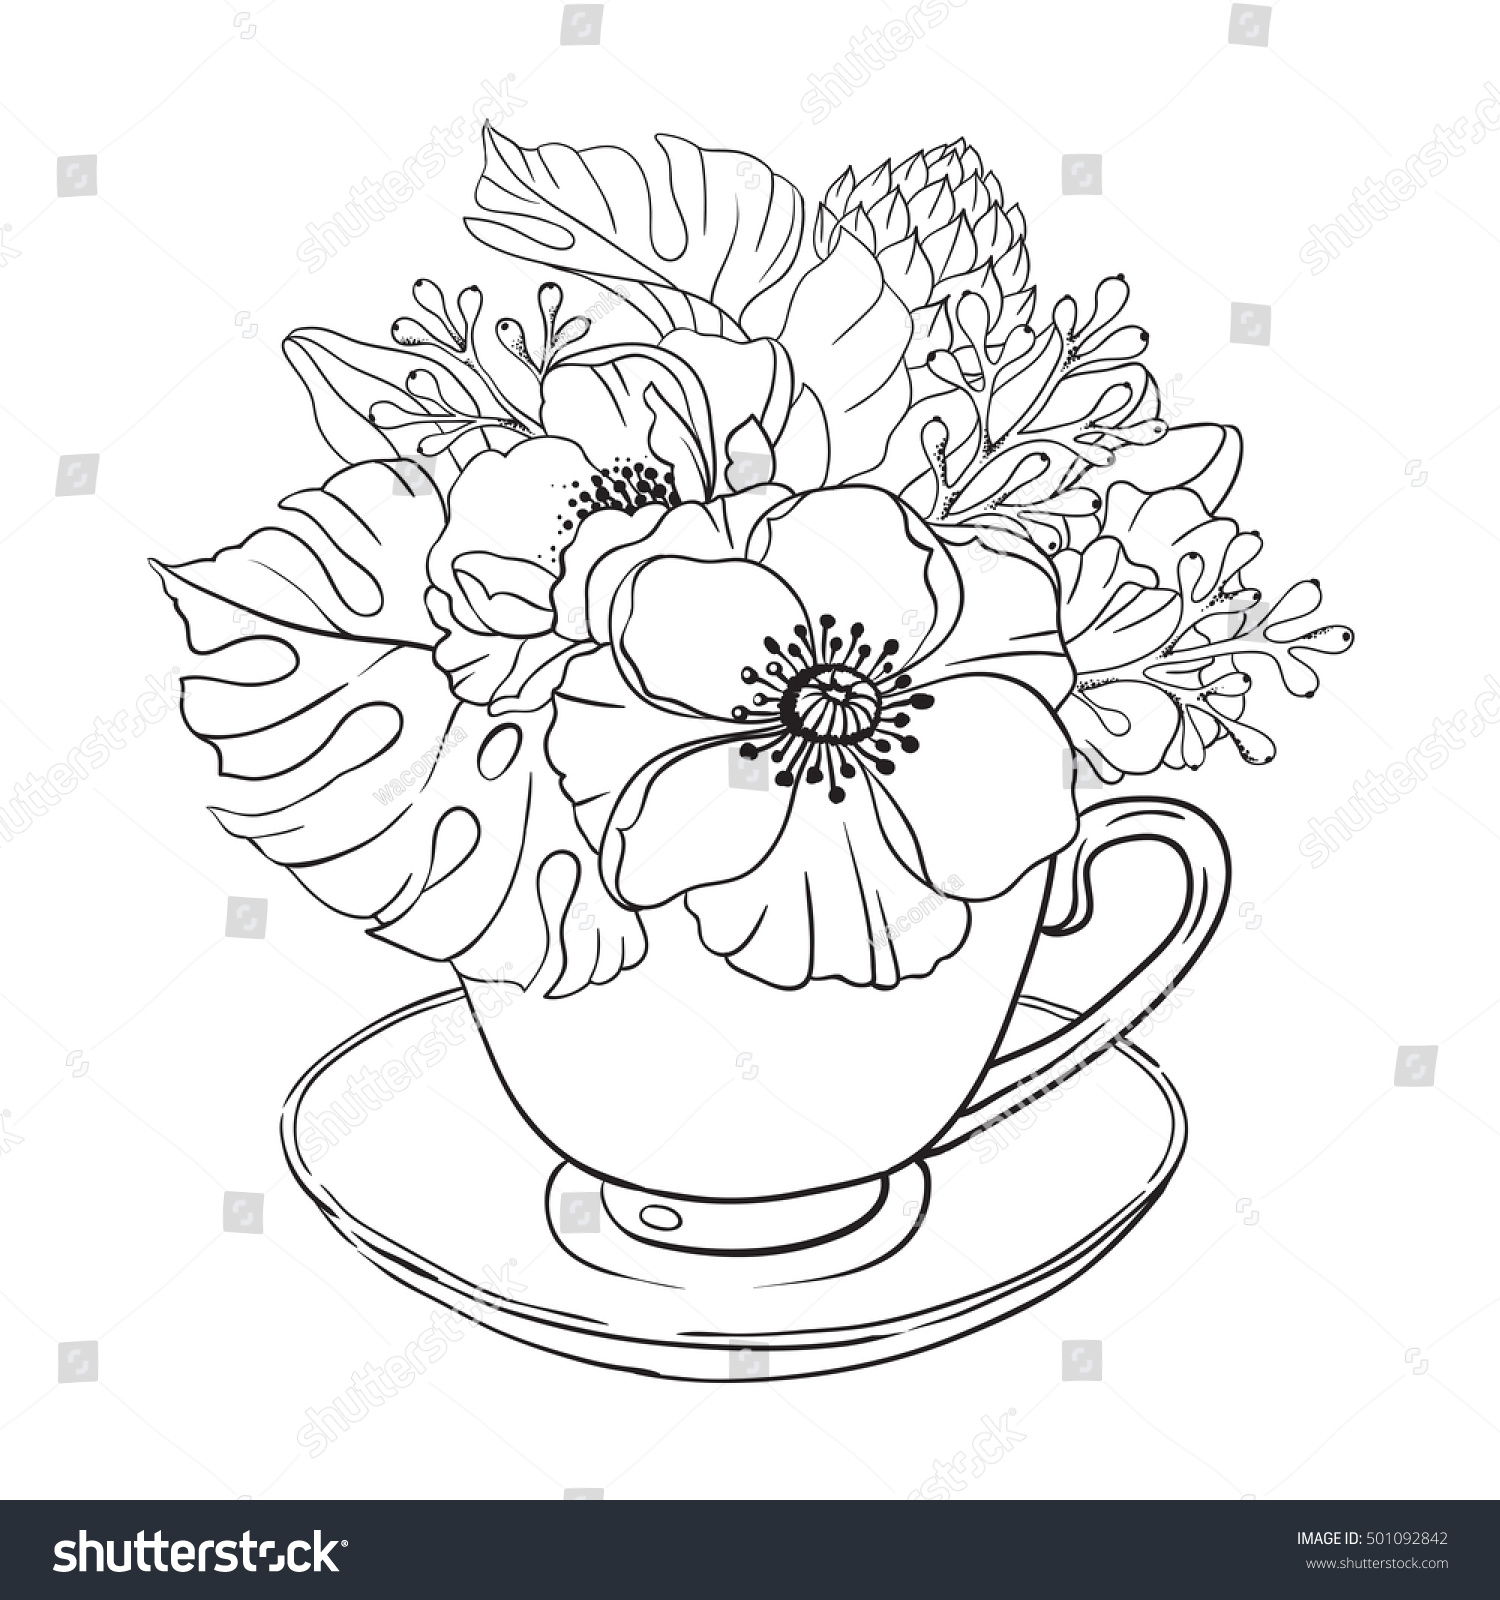 Vector Illustration Adult Coloring Page Flowers Bouquet Tea Cup Background